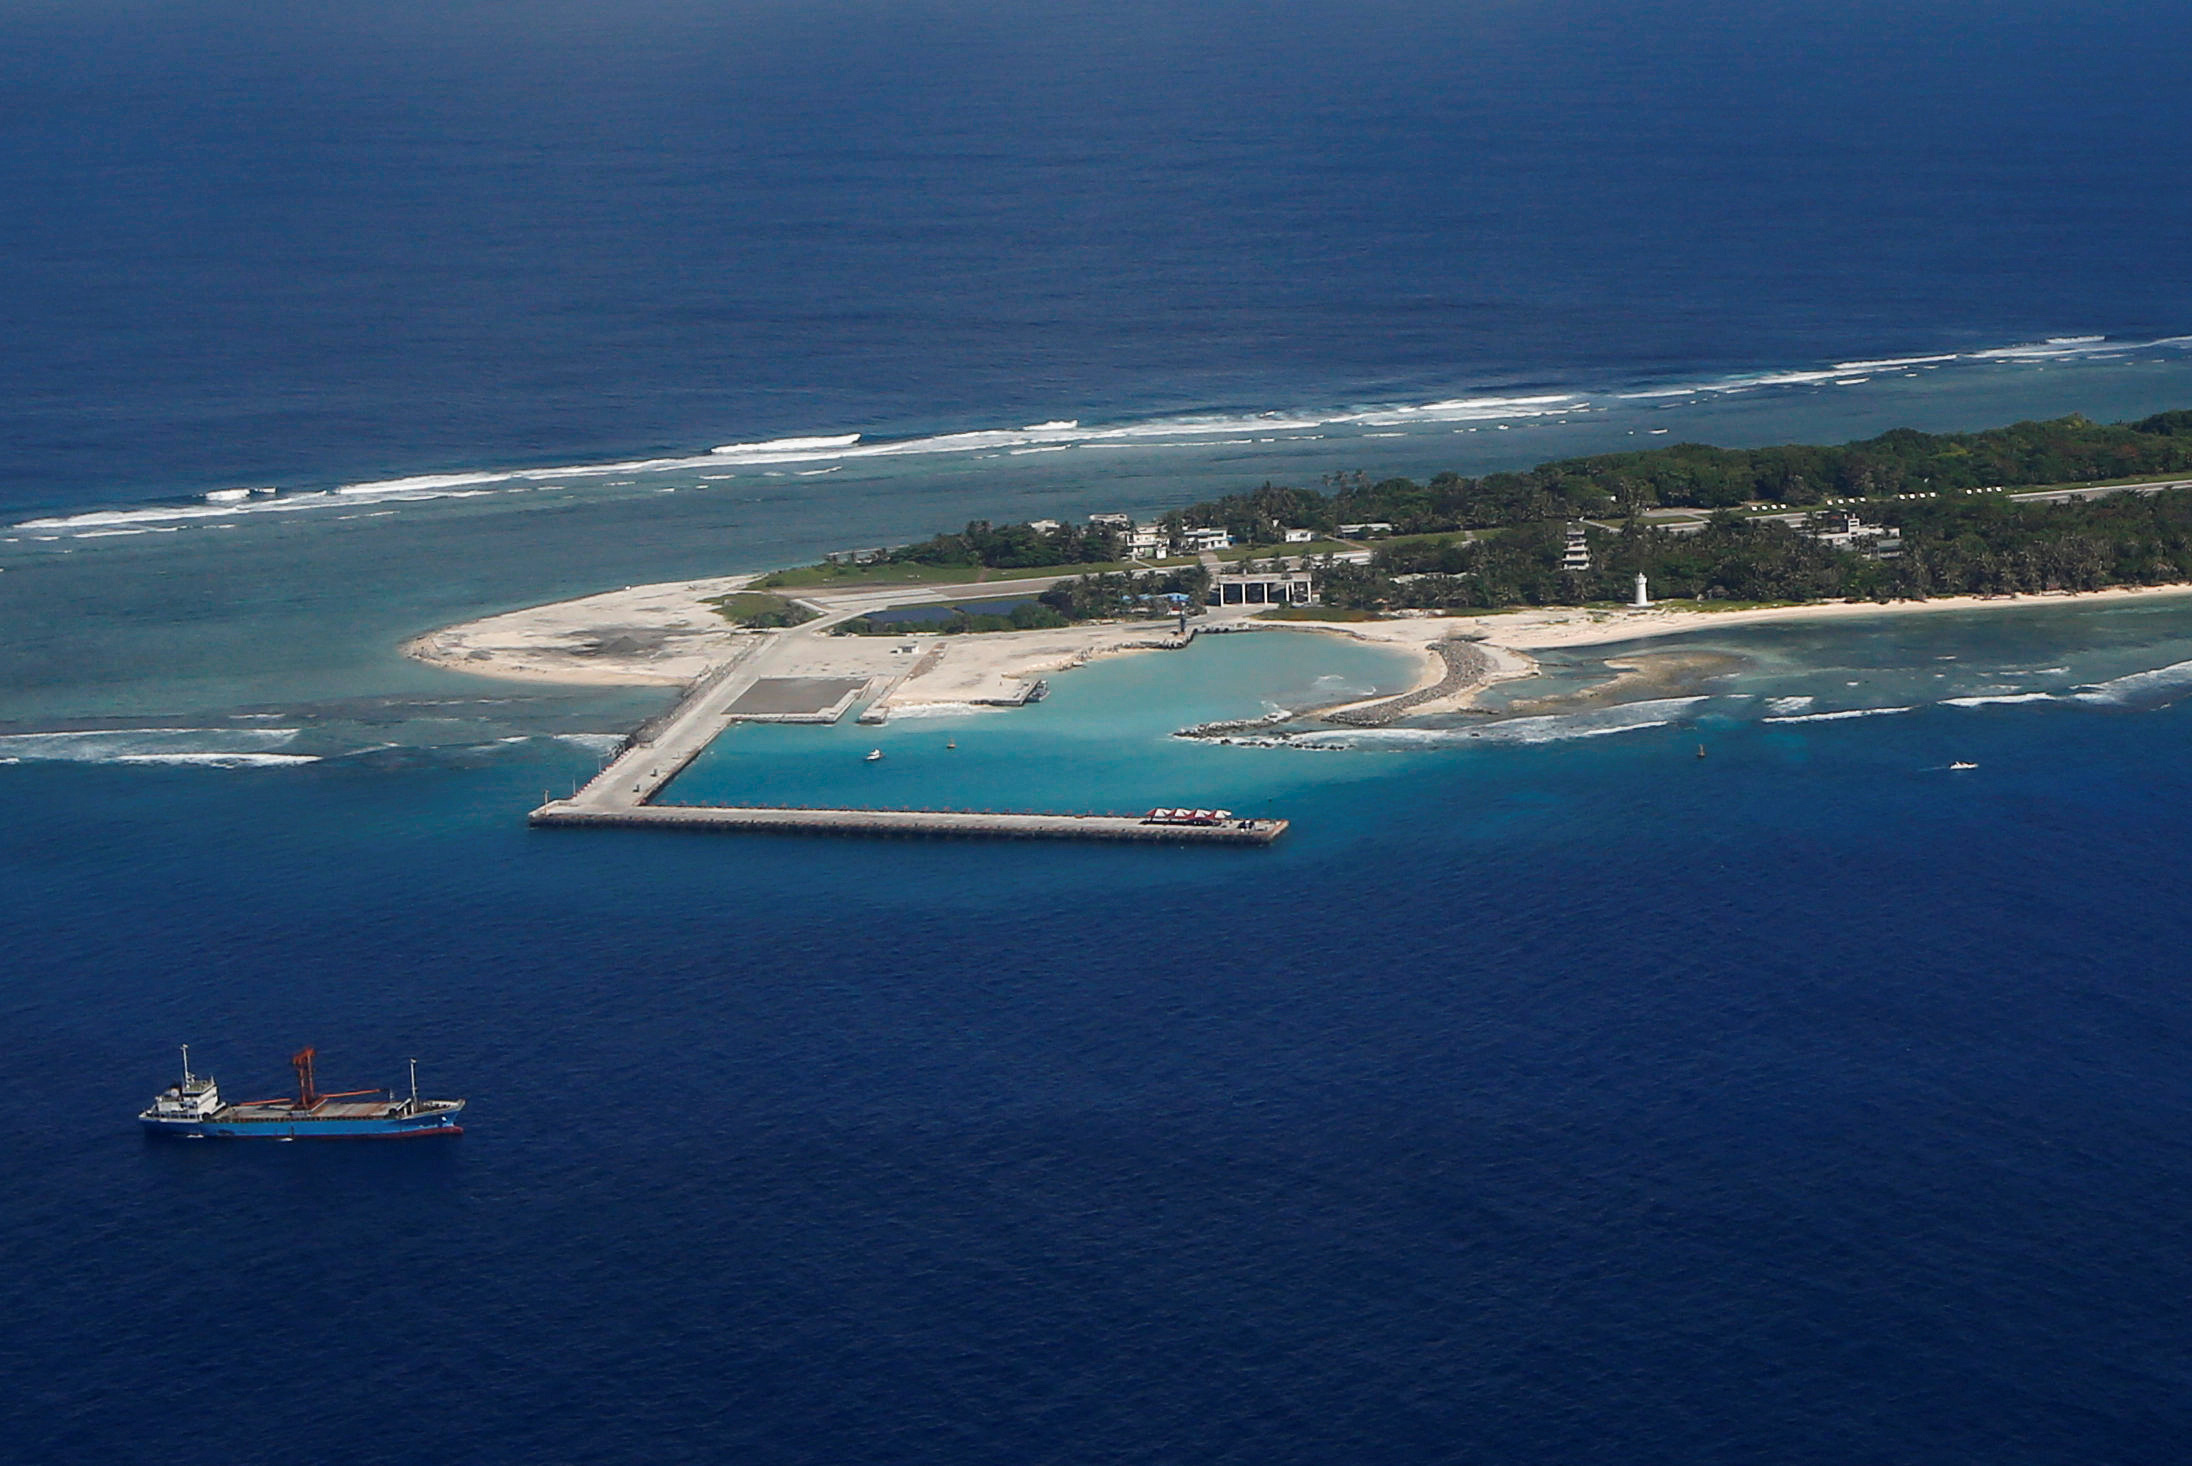 FILE - An aerial view shows Itu Aba, which the Taiwanese call Taiping, in the South China Sea.